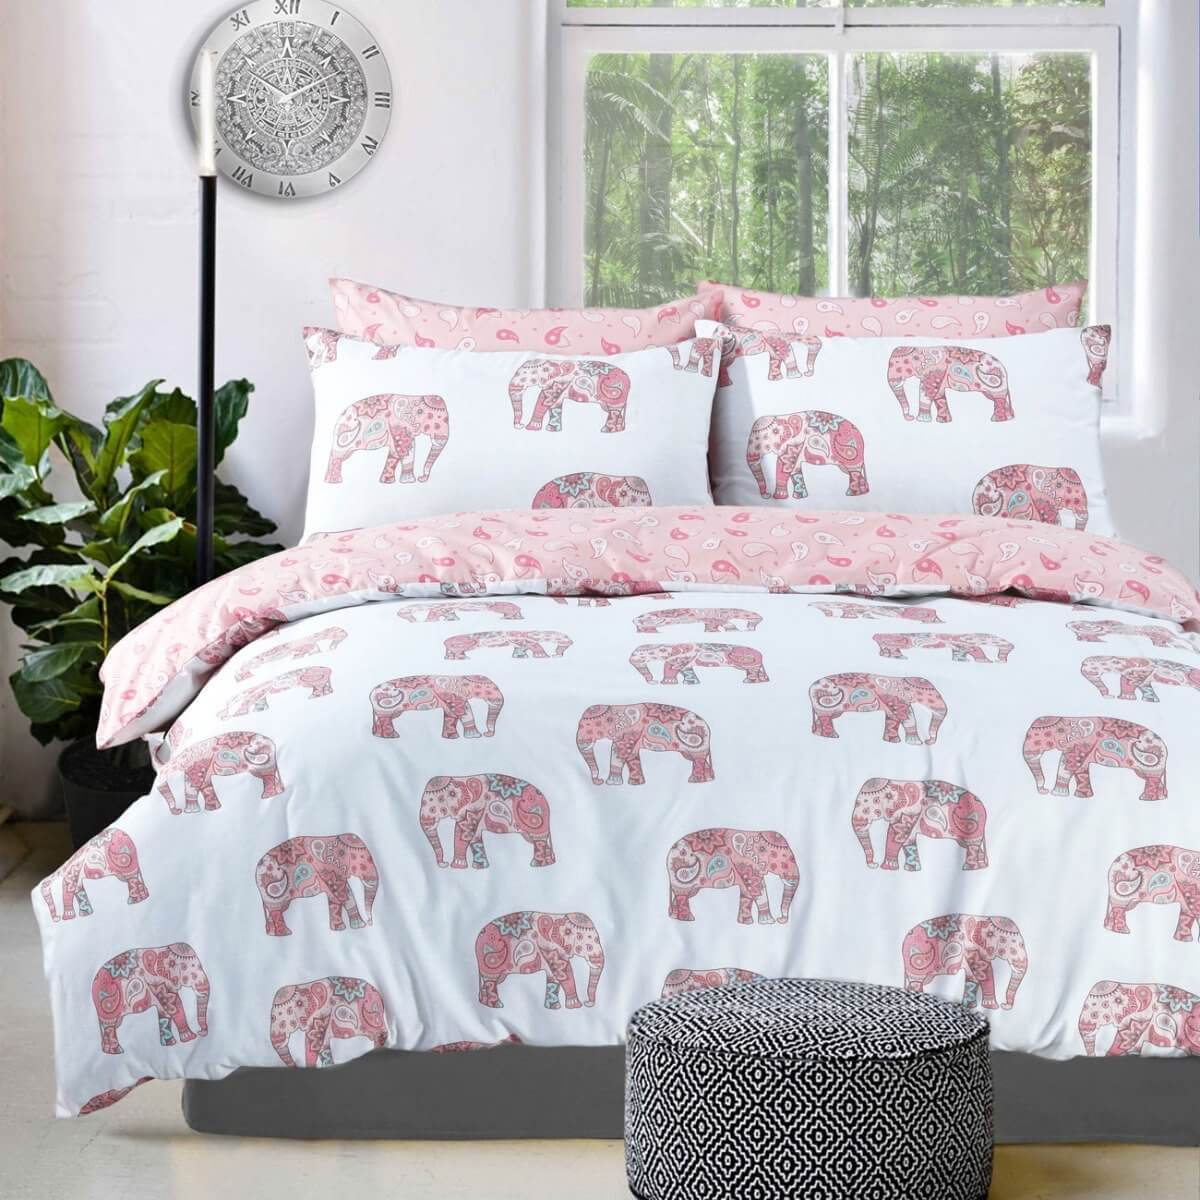 Elephant Pink Bedding - Reversible Duvet Cover and Pillowcase Set